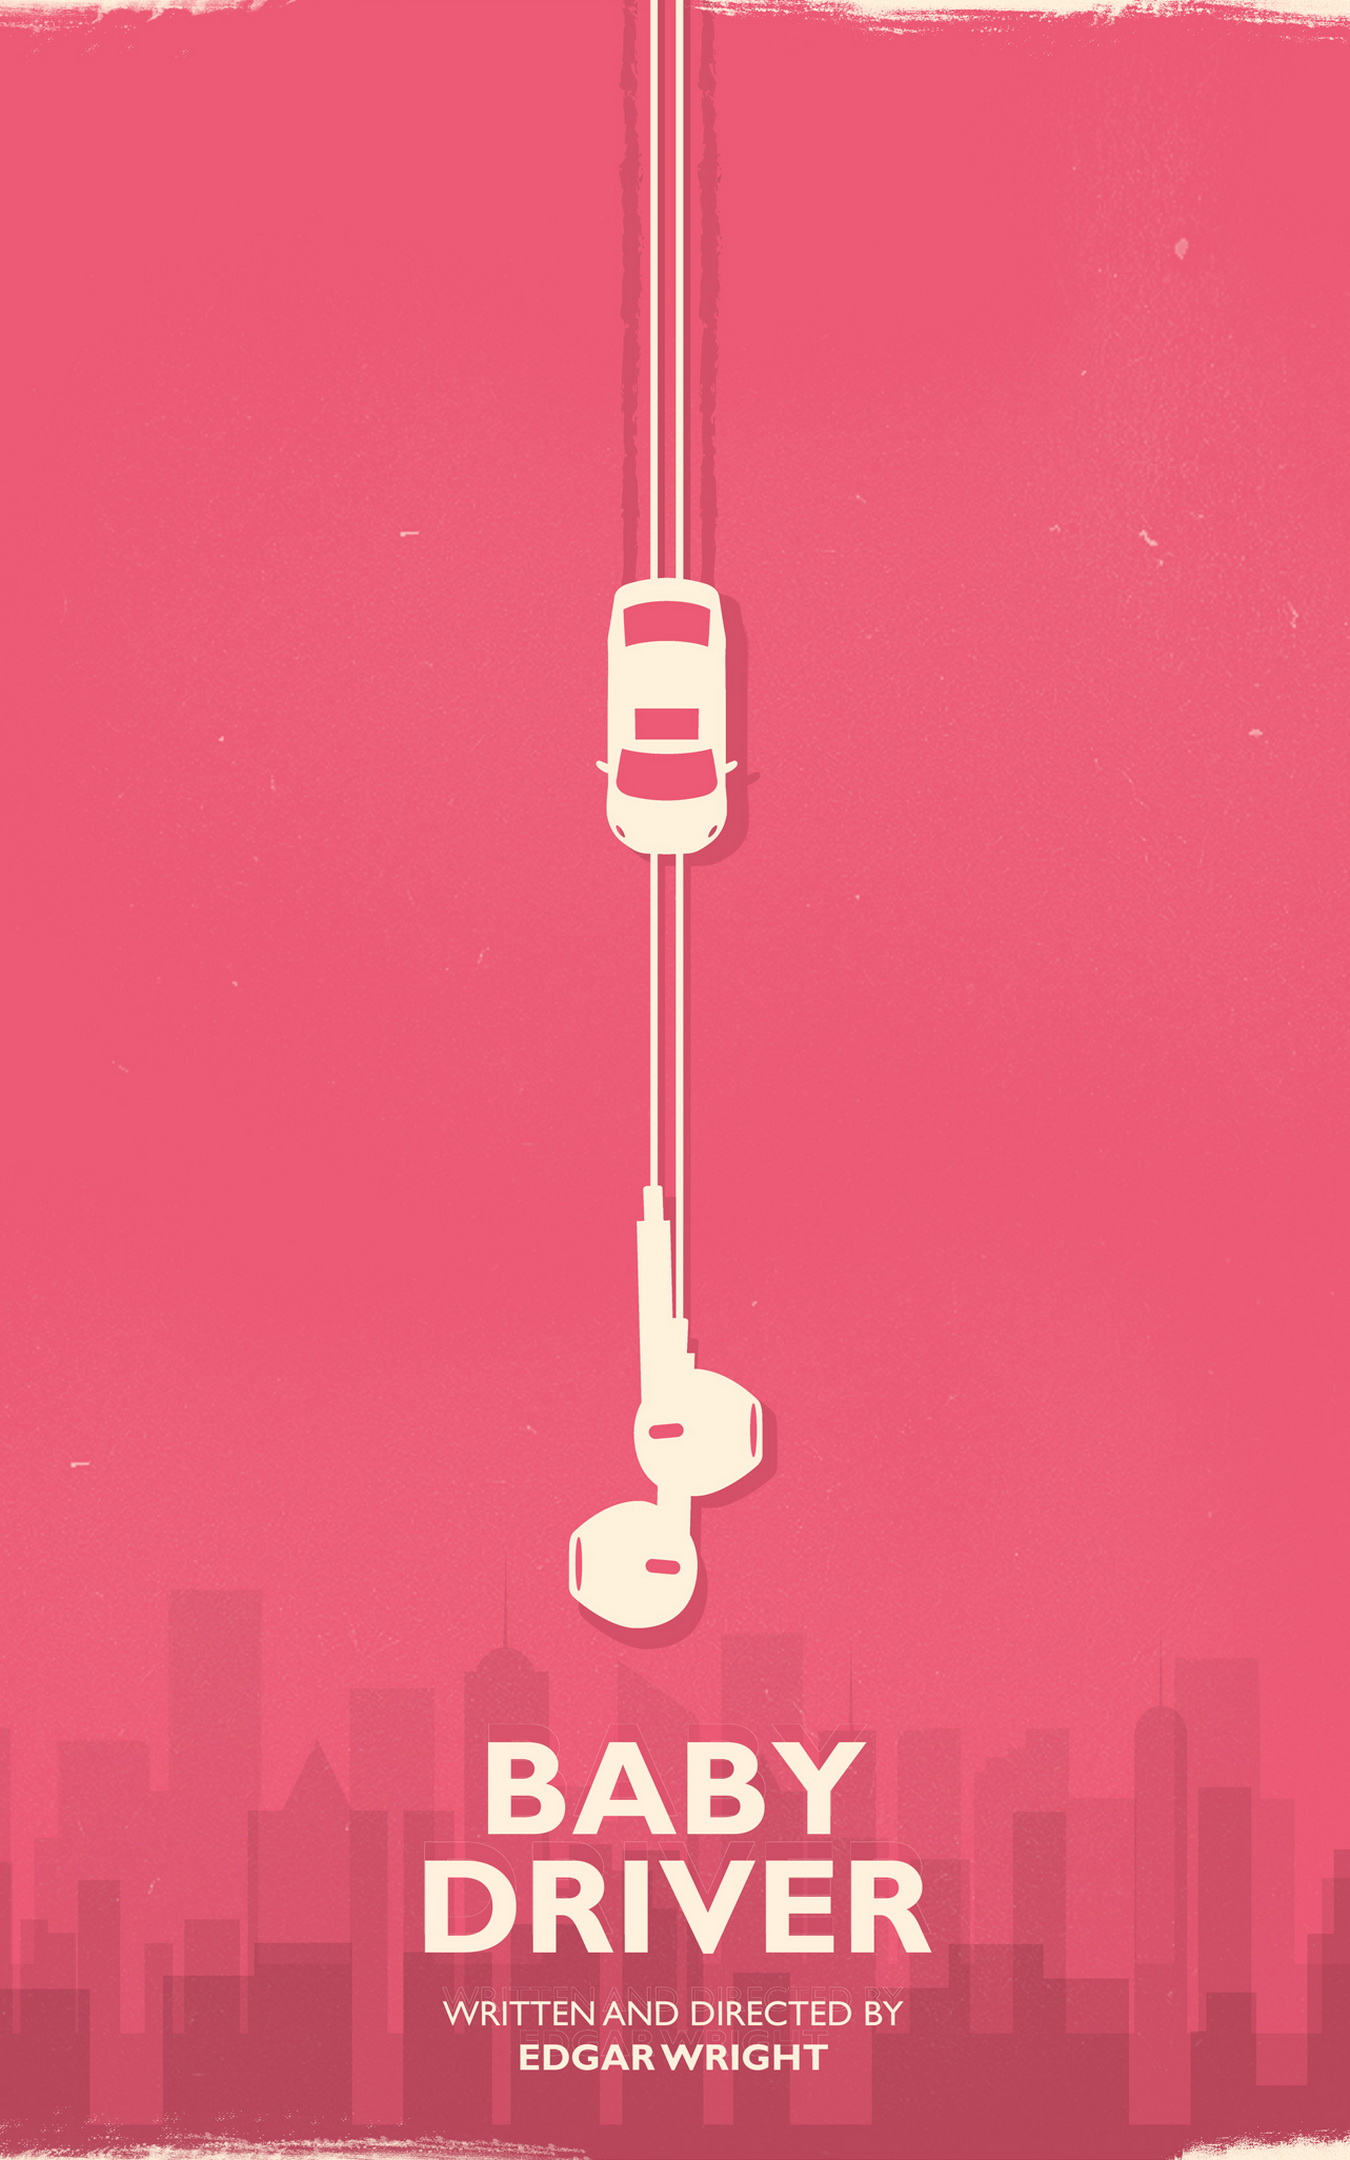 Edgar Wright Movies Baby Driver Minimalism Car Wallpapers HD 1350x2160